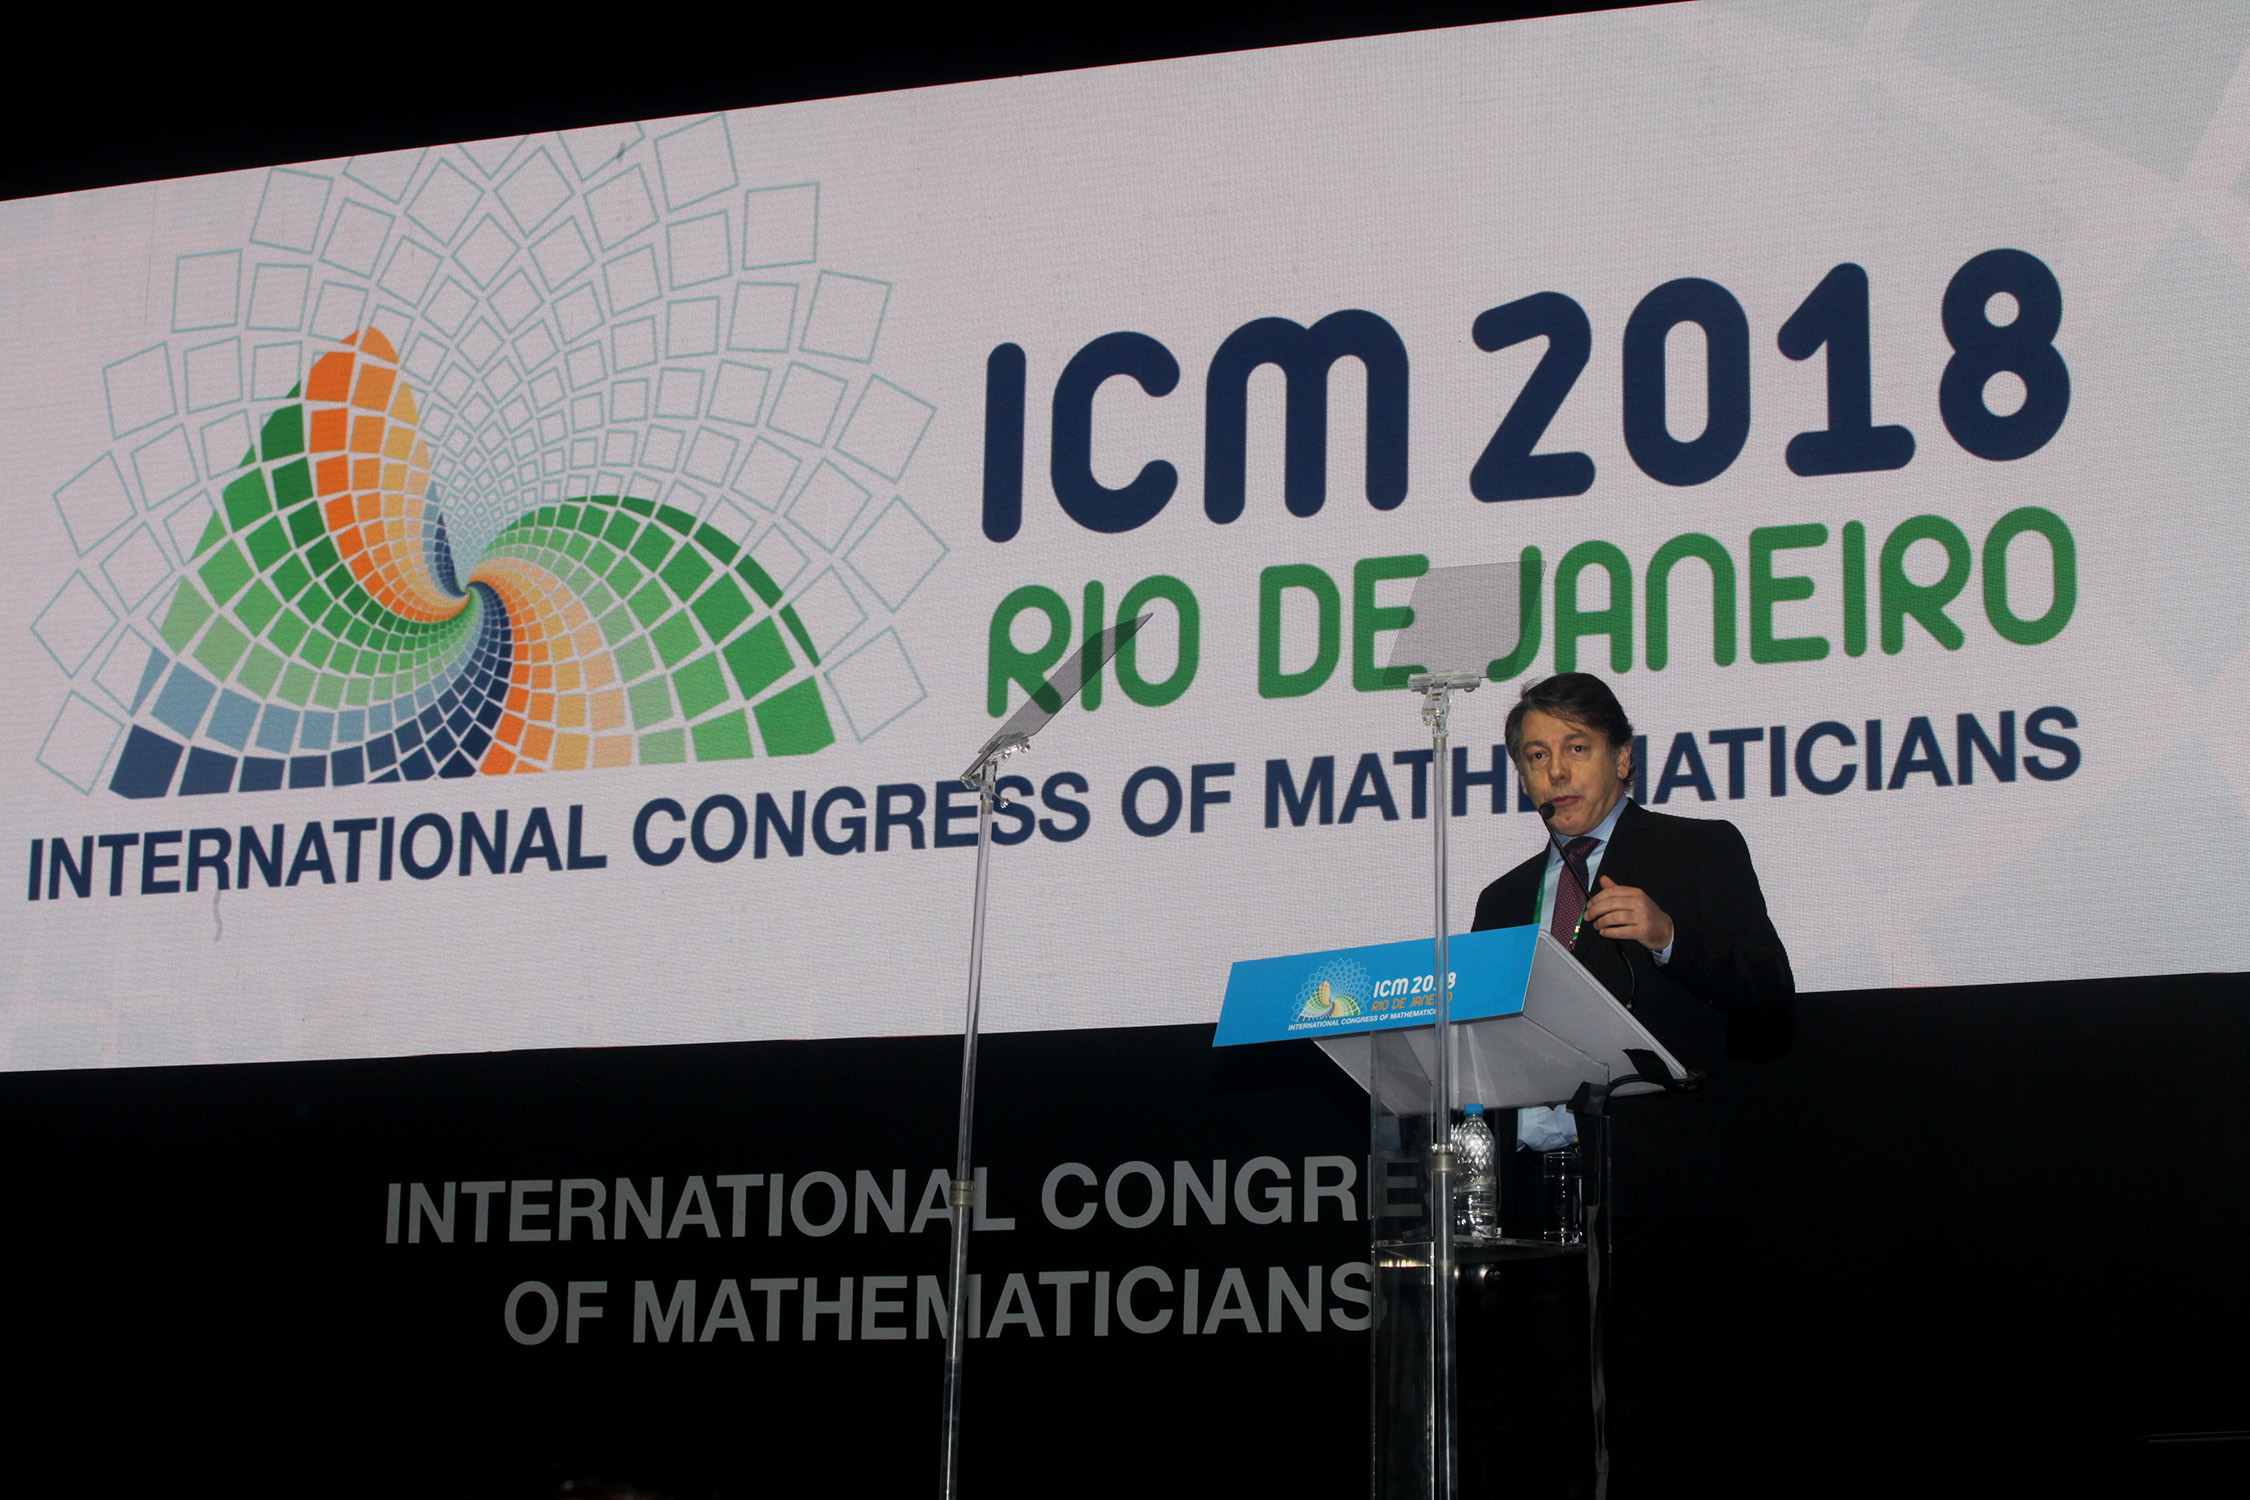 A science faculty member speaks at a podium at the International Congress of Mathematicians